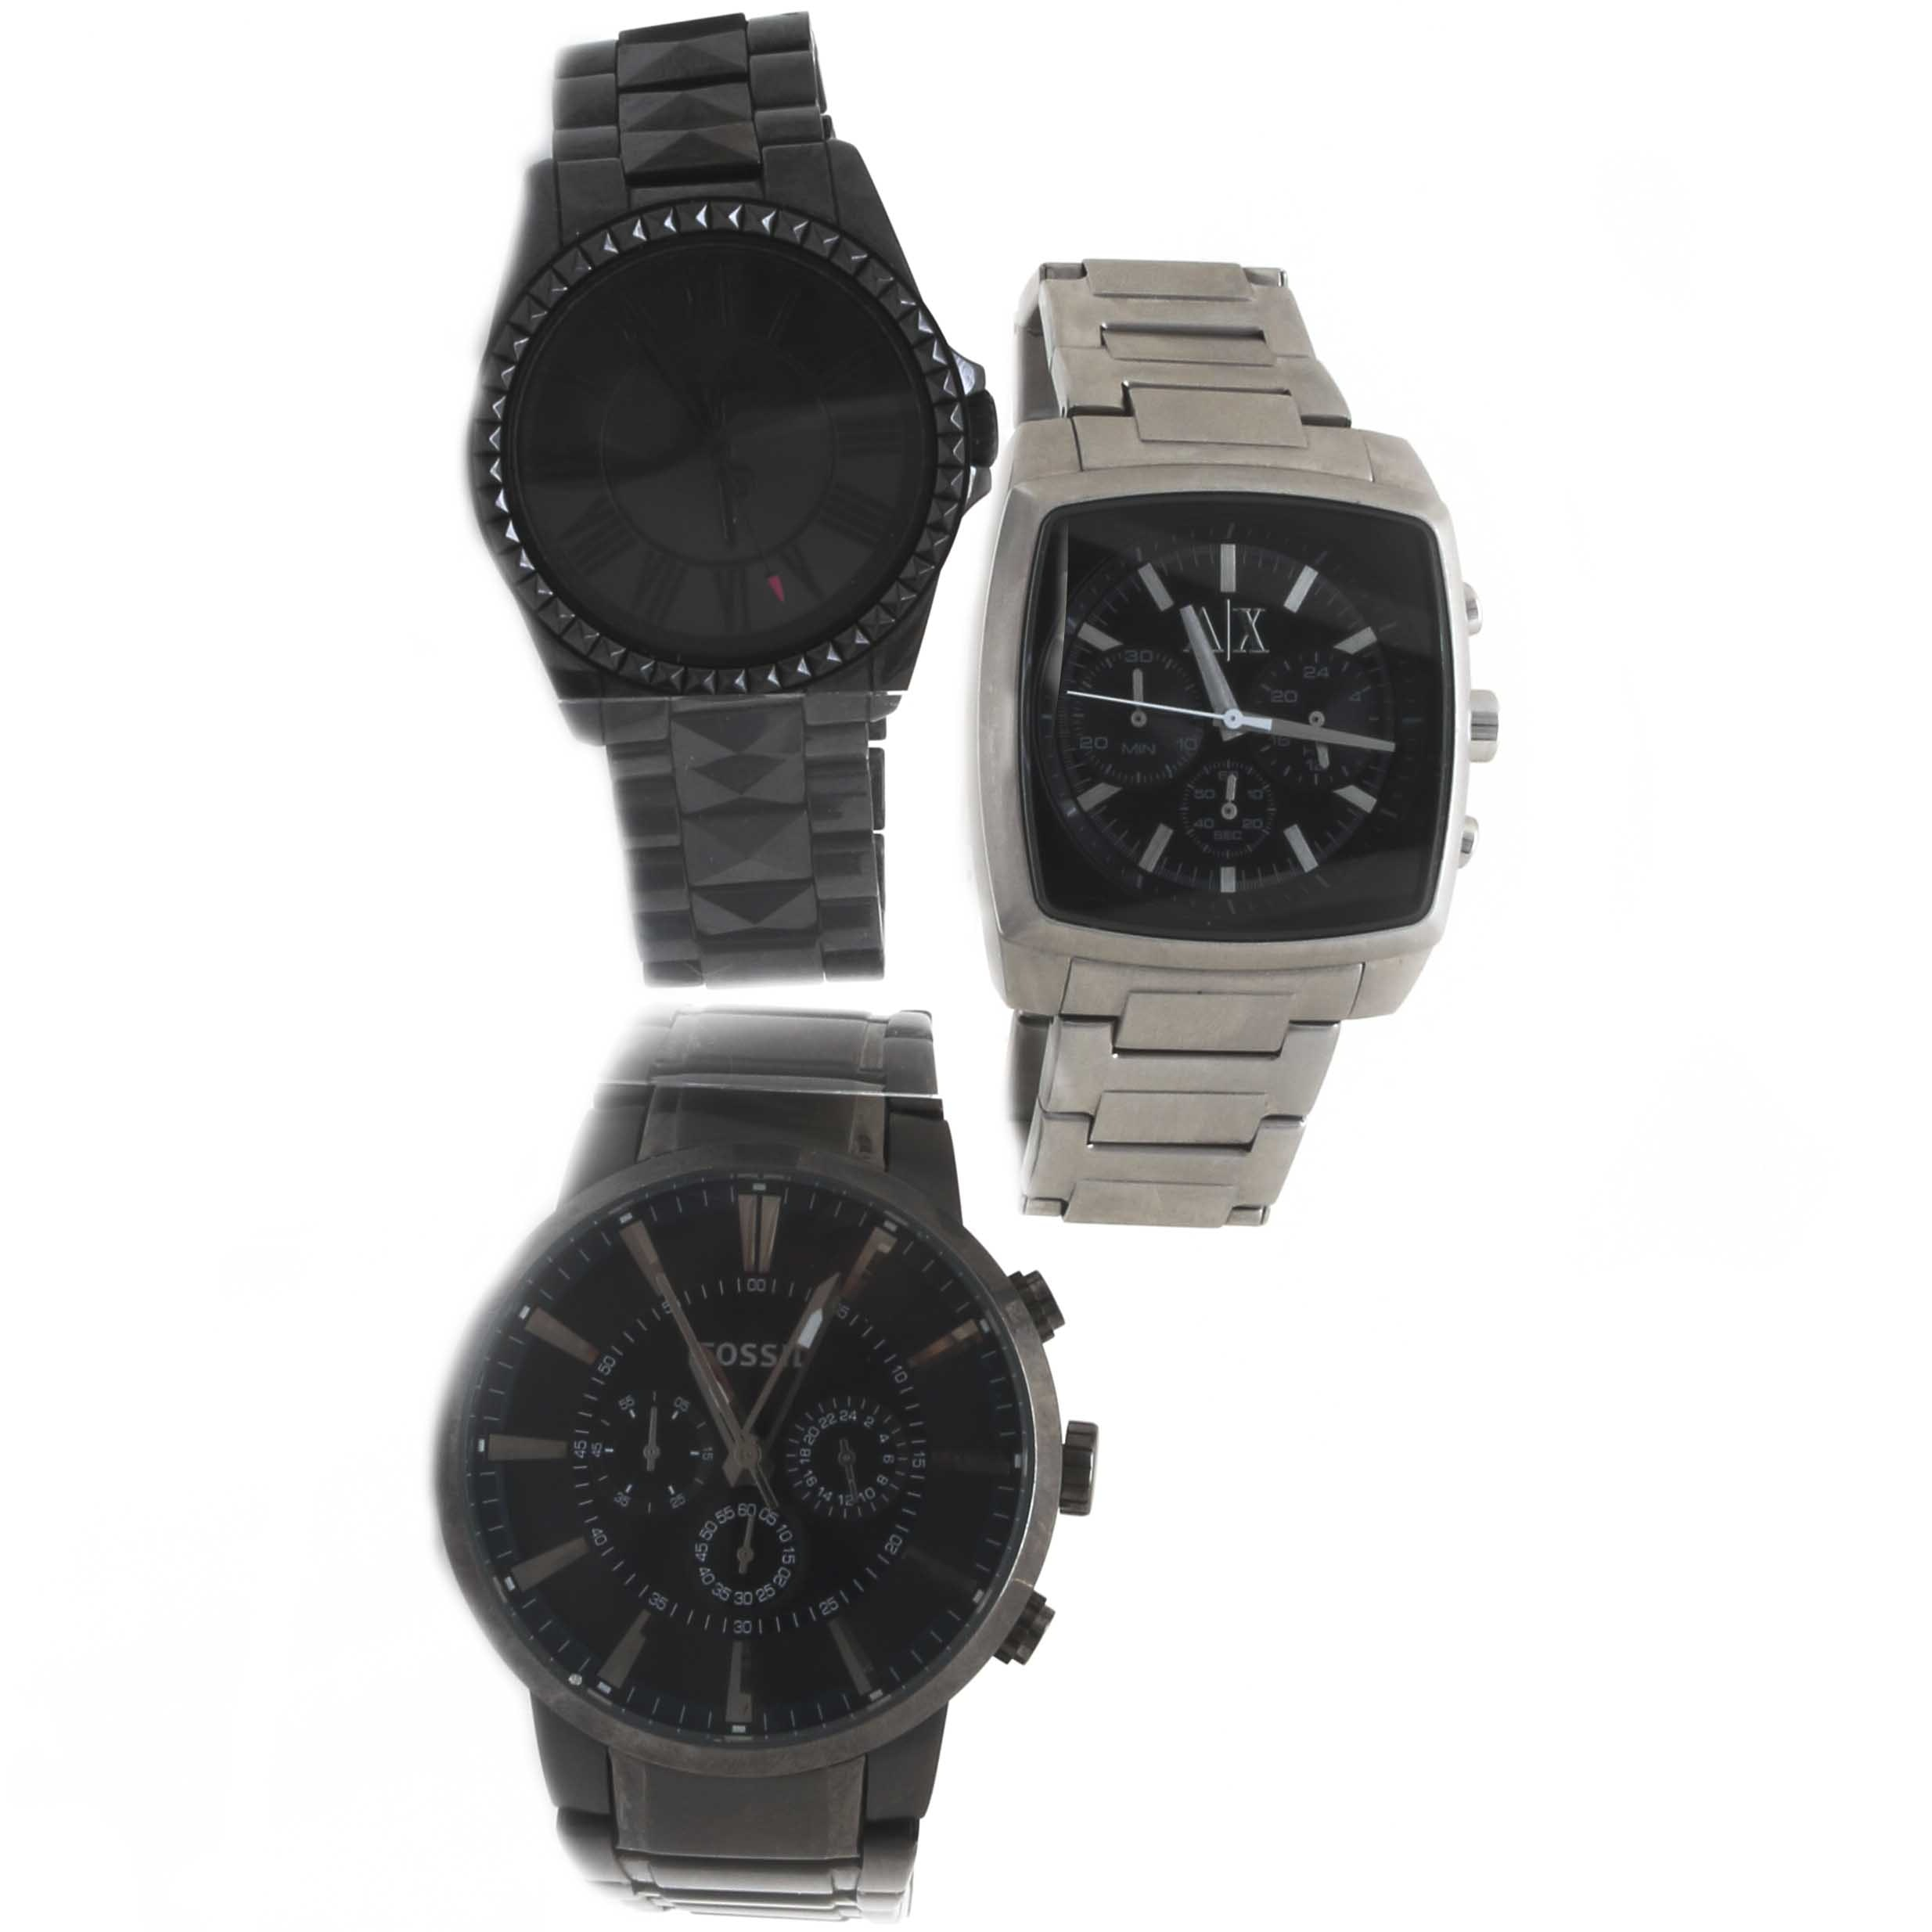 Stainless Steel Wristwatch Assortment Including Armani Exchange and Fossil